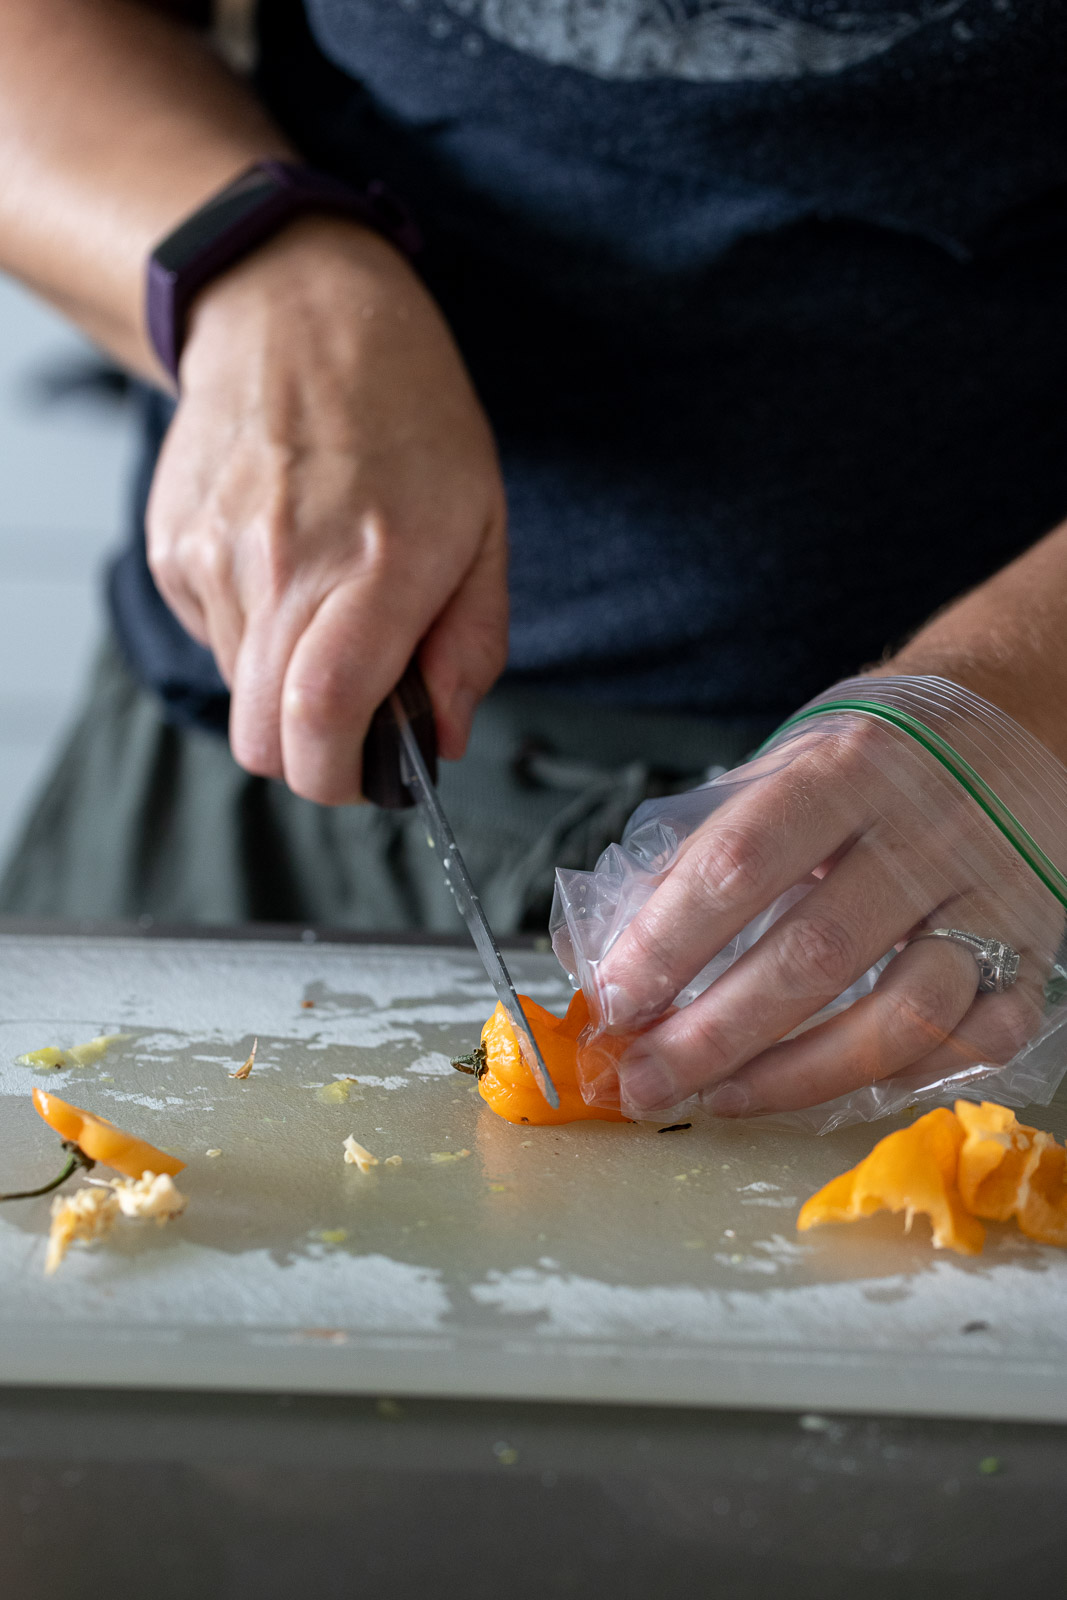 woman cutting up habanero peppers on a plastic cutting board.